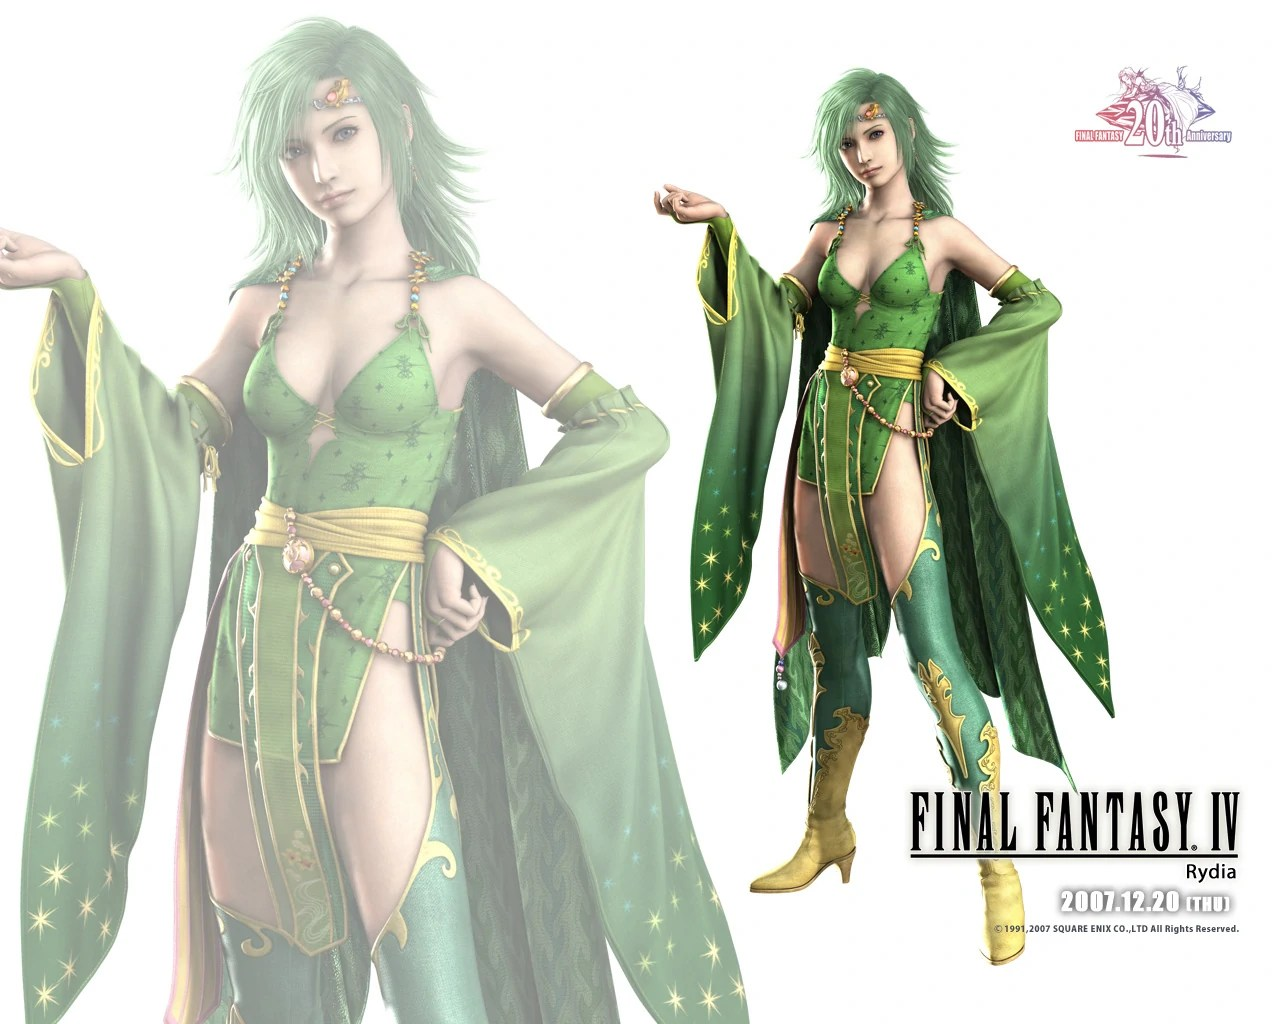 Final Fantasy IV Wallpapers Misc The Full Wiki